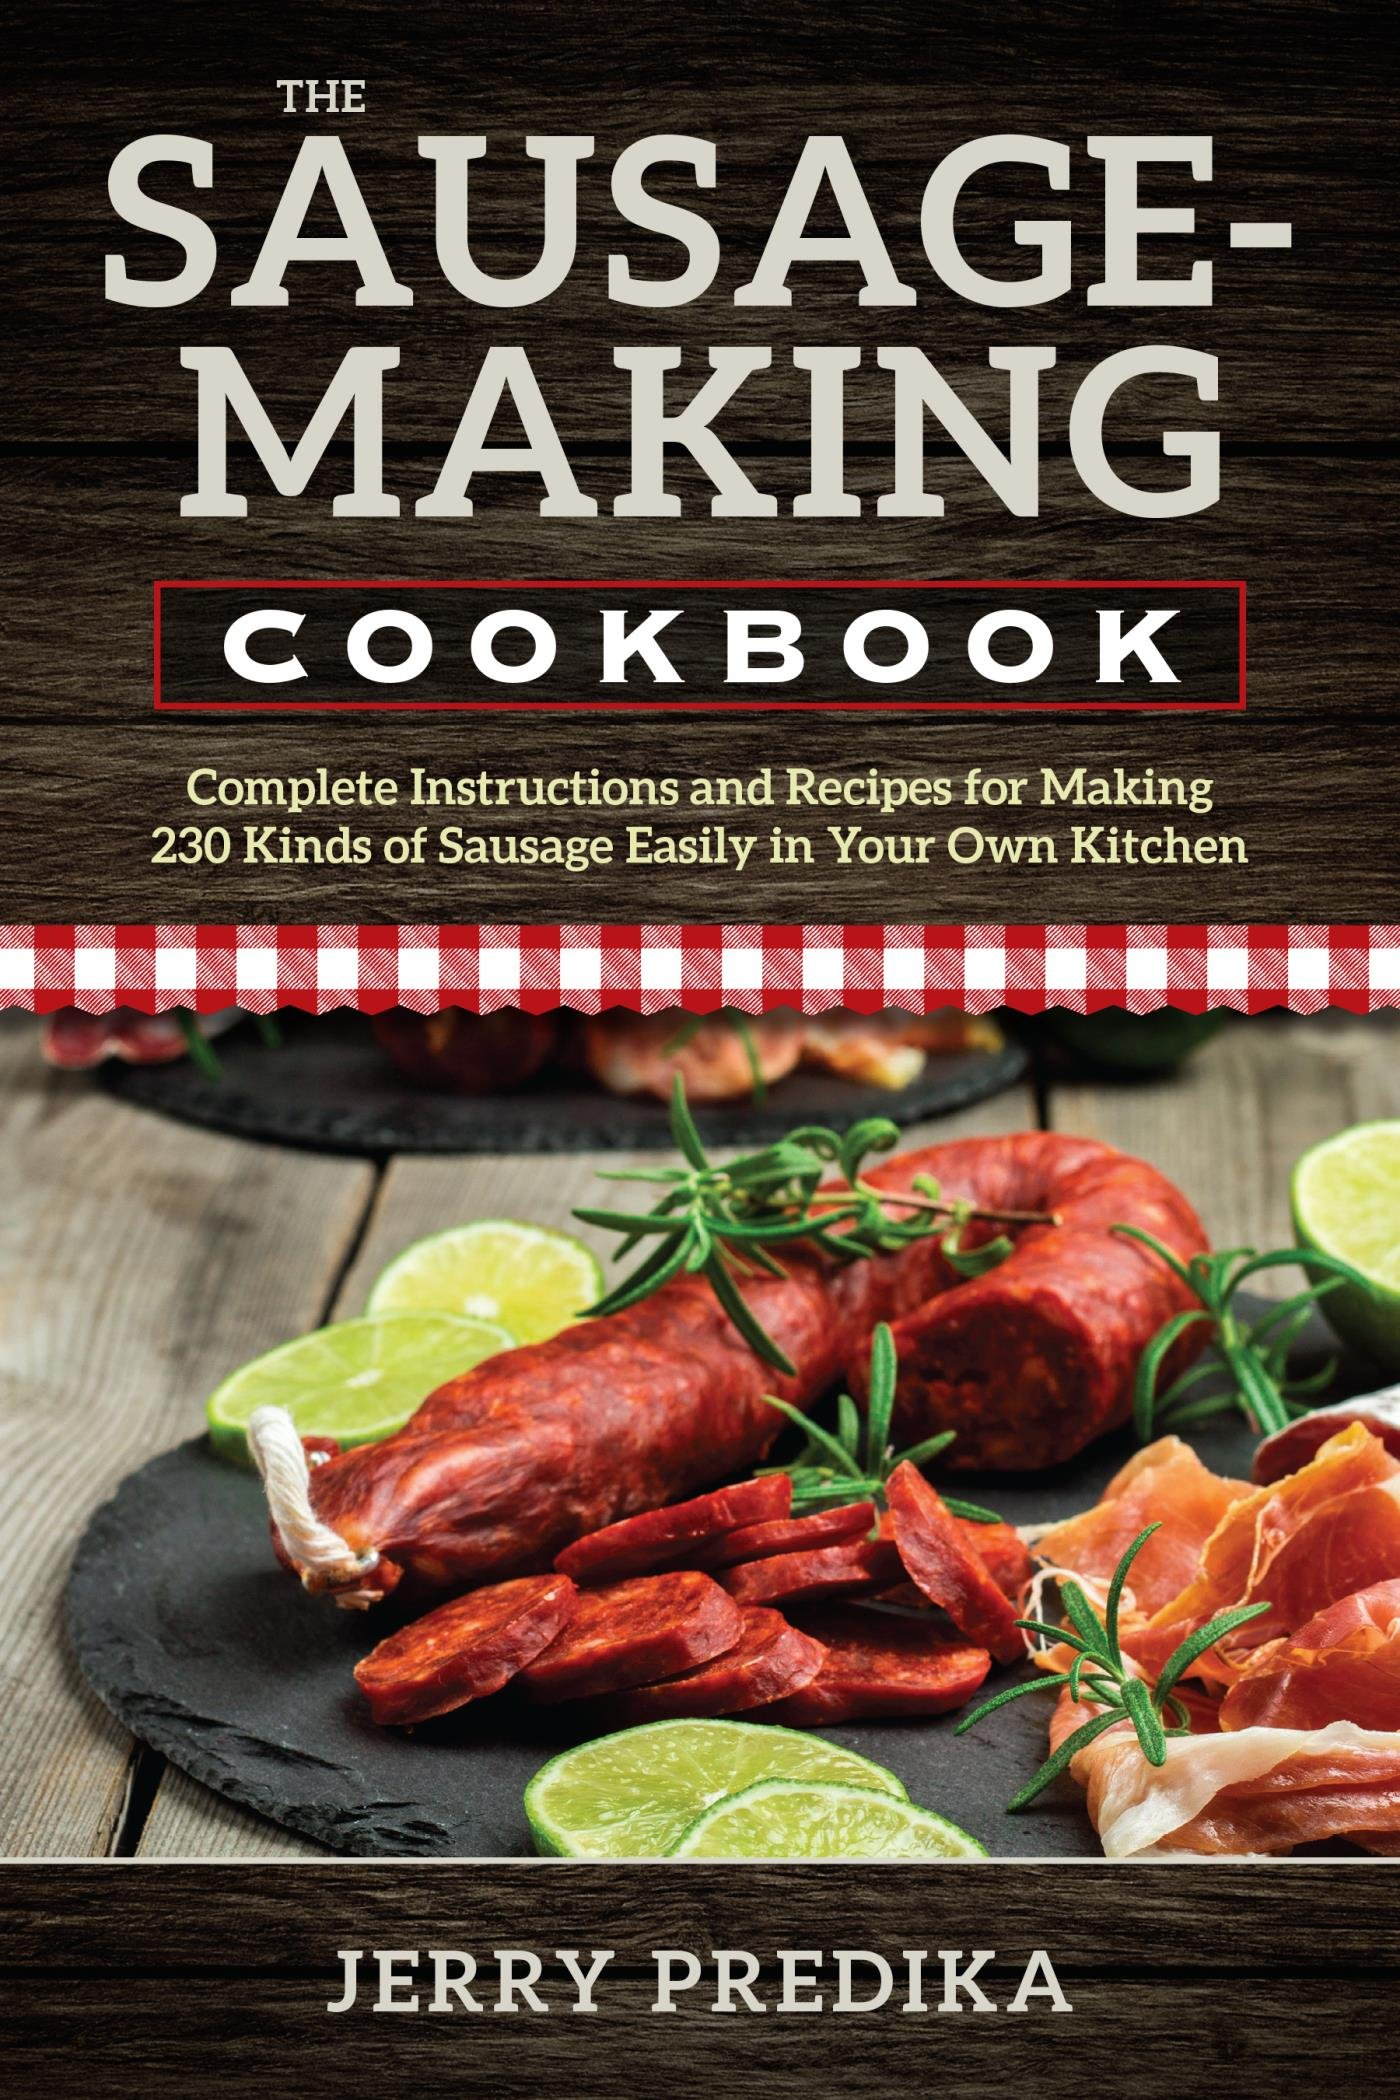 Image OfThe Sausage-Making Cookbook: Complete Instructions And Recipes For Making 230 Kinds Of Sausage Easily In Your Own Kitchen ...